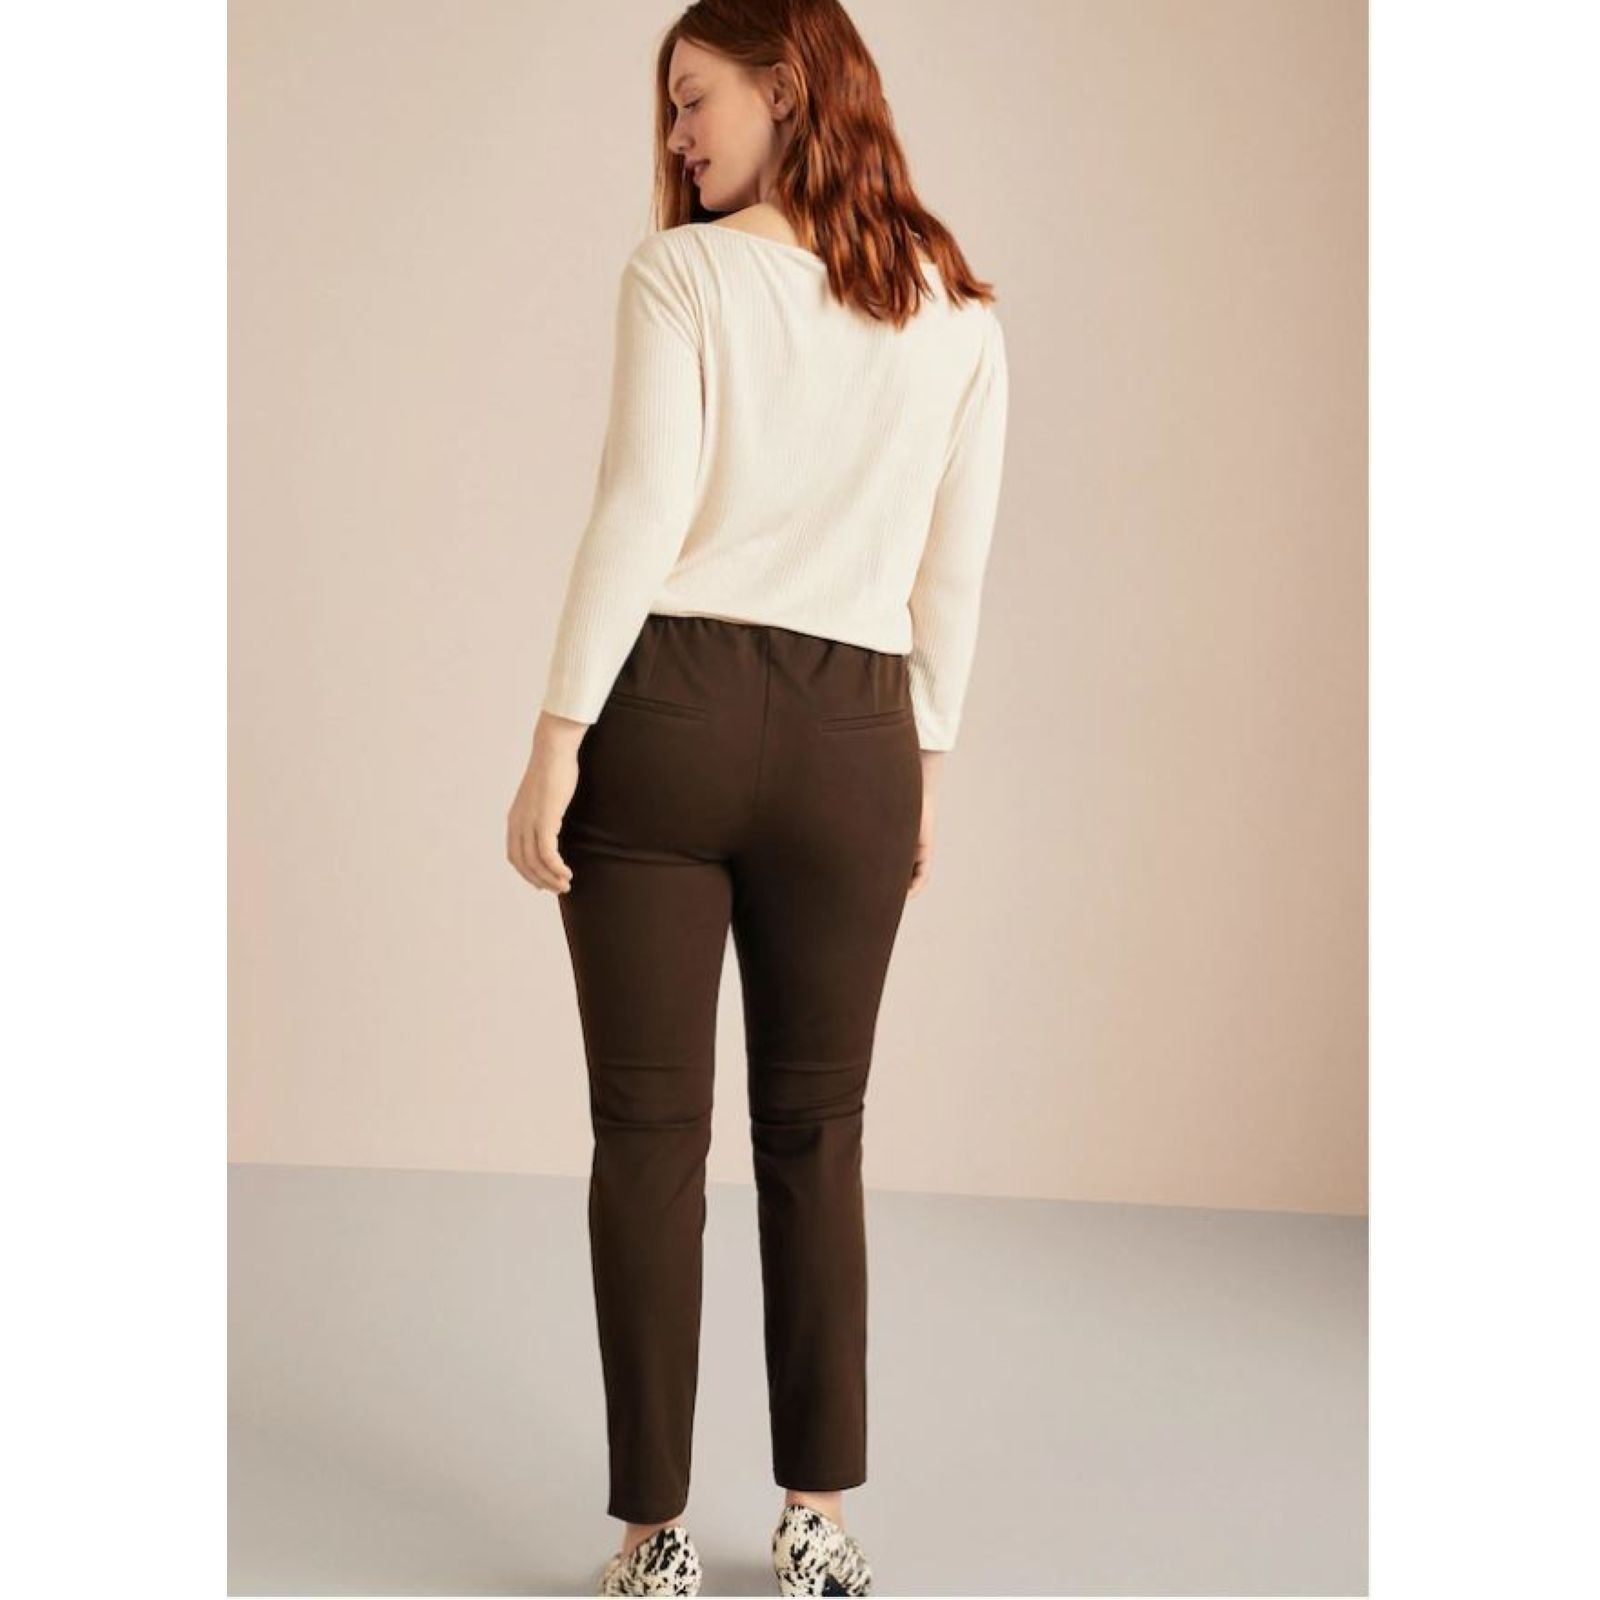 Élastique Mango By Cigarette Marron Pantalon Violeta CwpI5qA